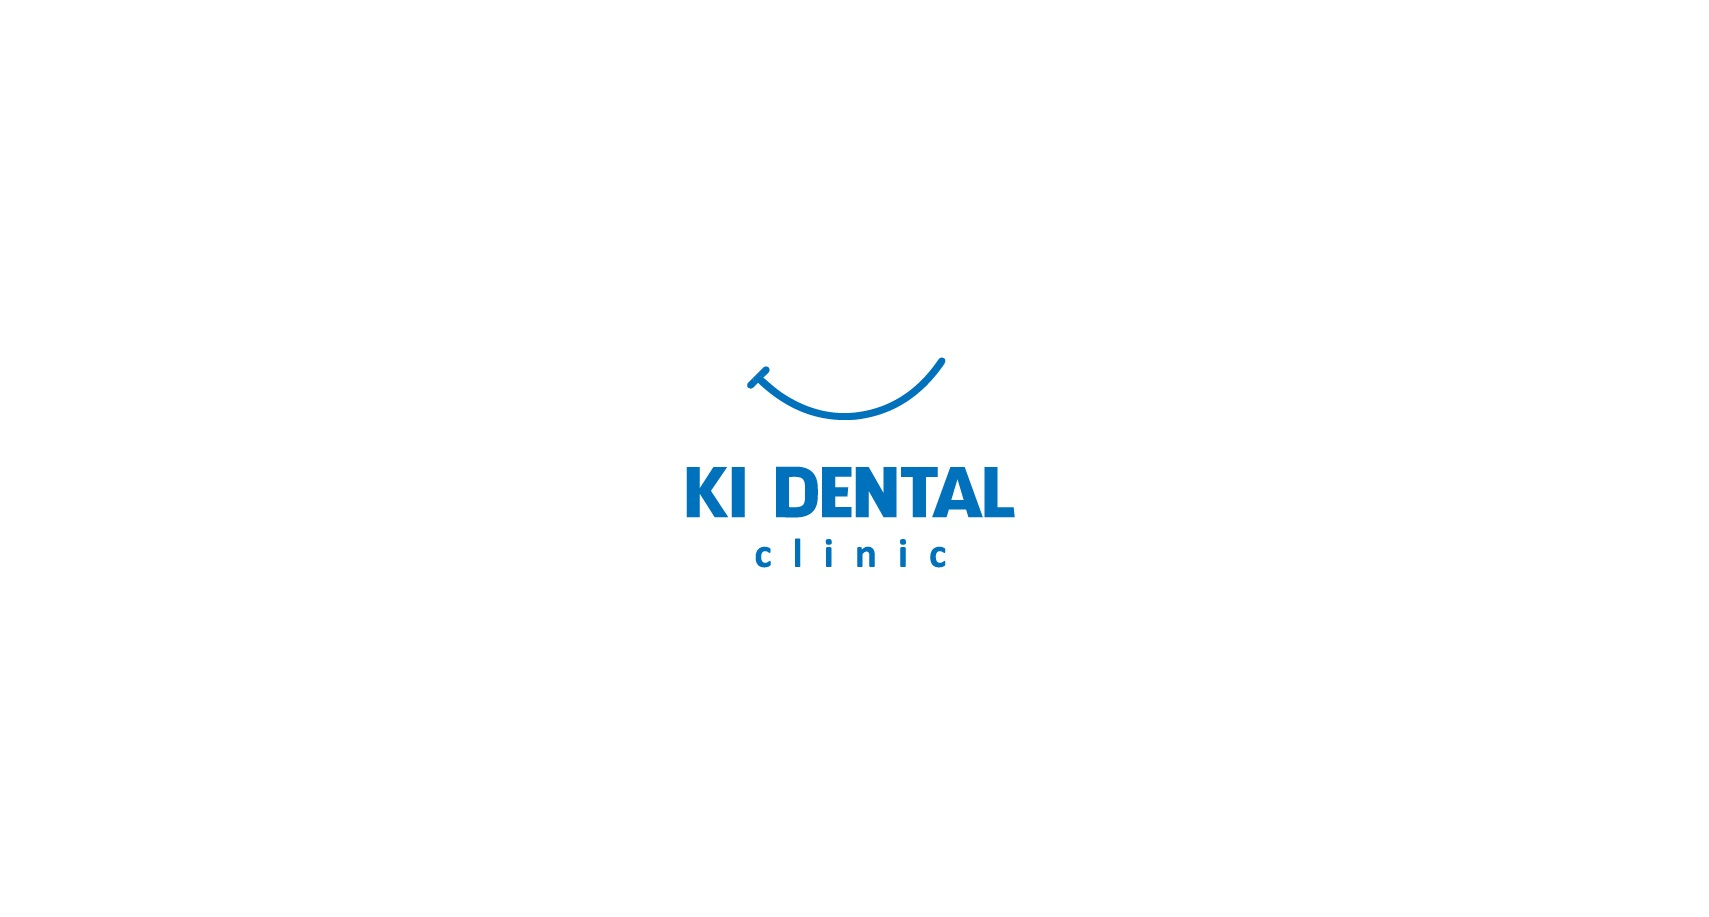 Ki Dental Clinic